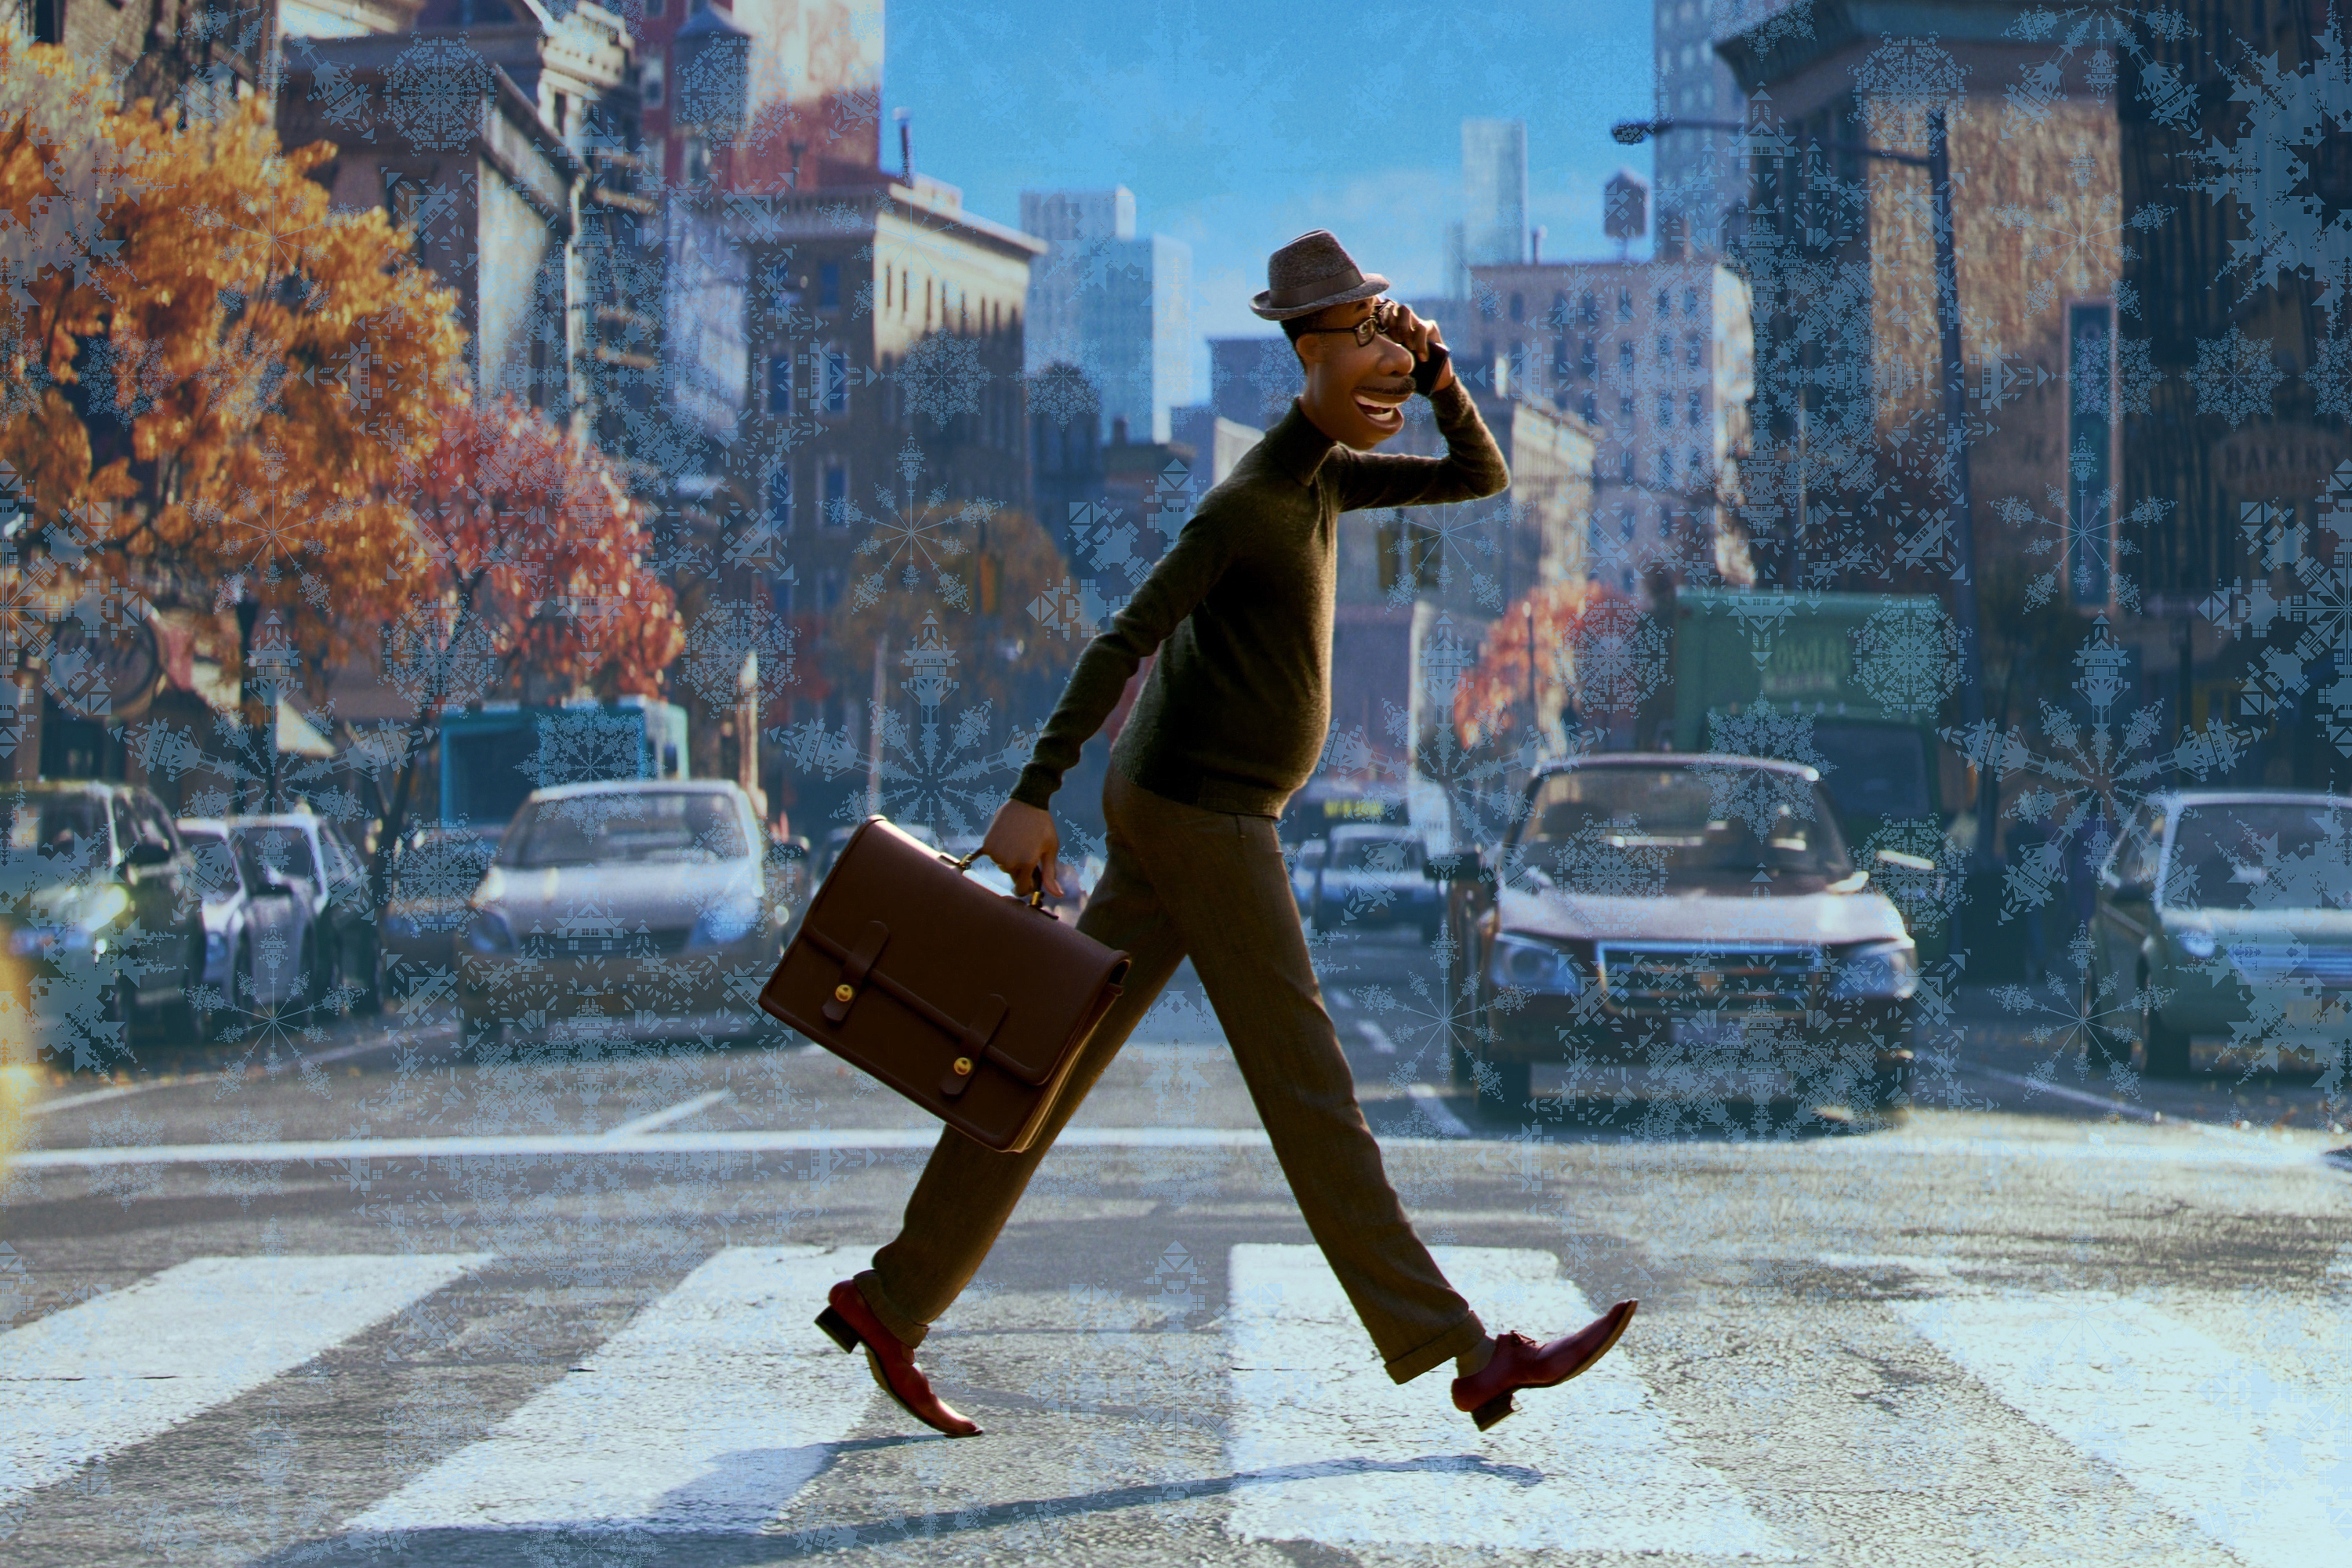 """Man walks on a cross walk speaking on the phone from the Pixar movie """"Soul"""""""